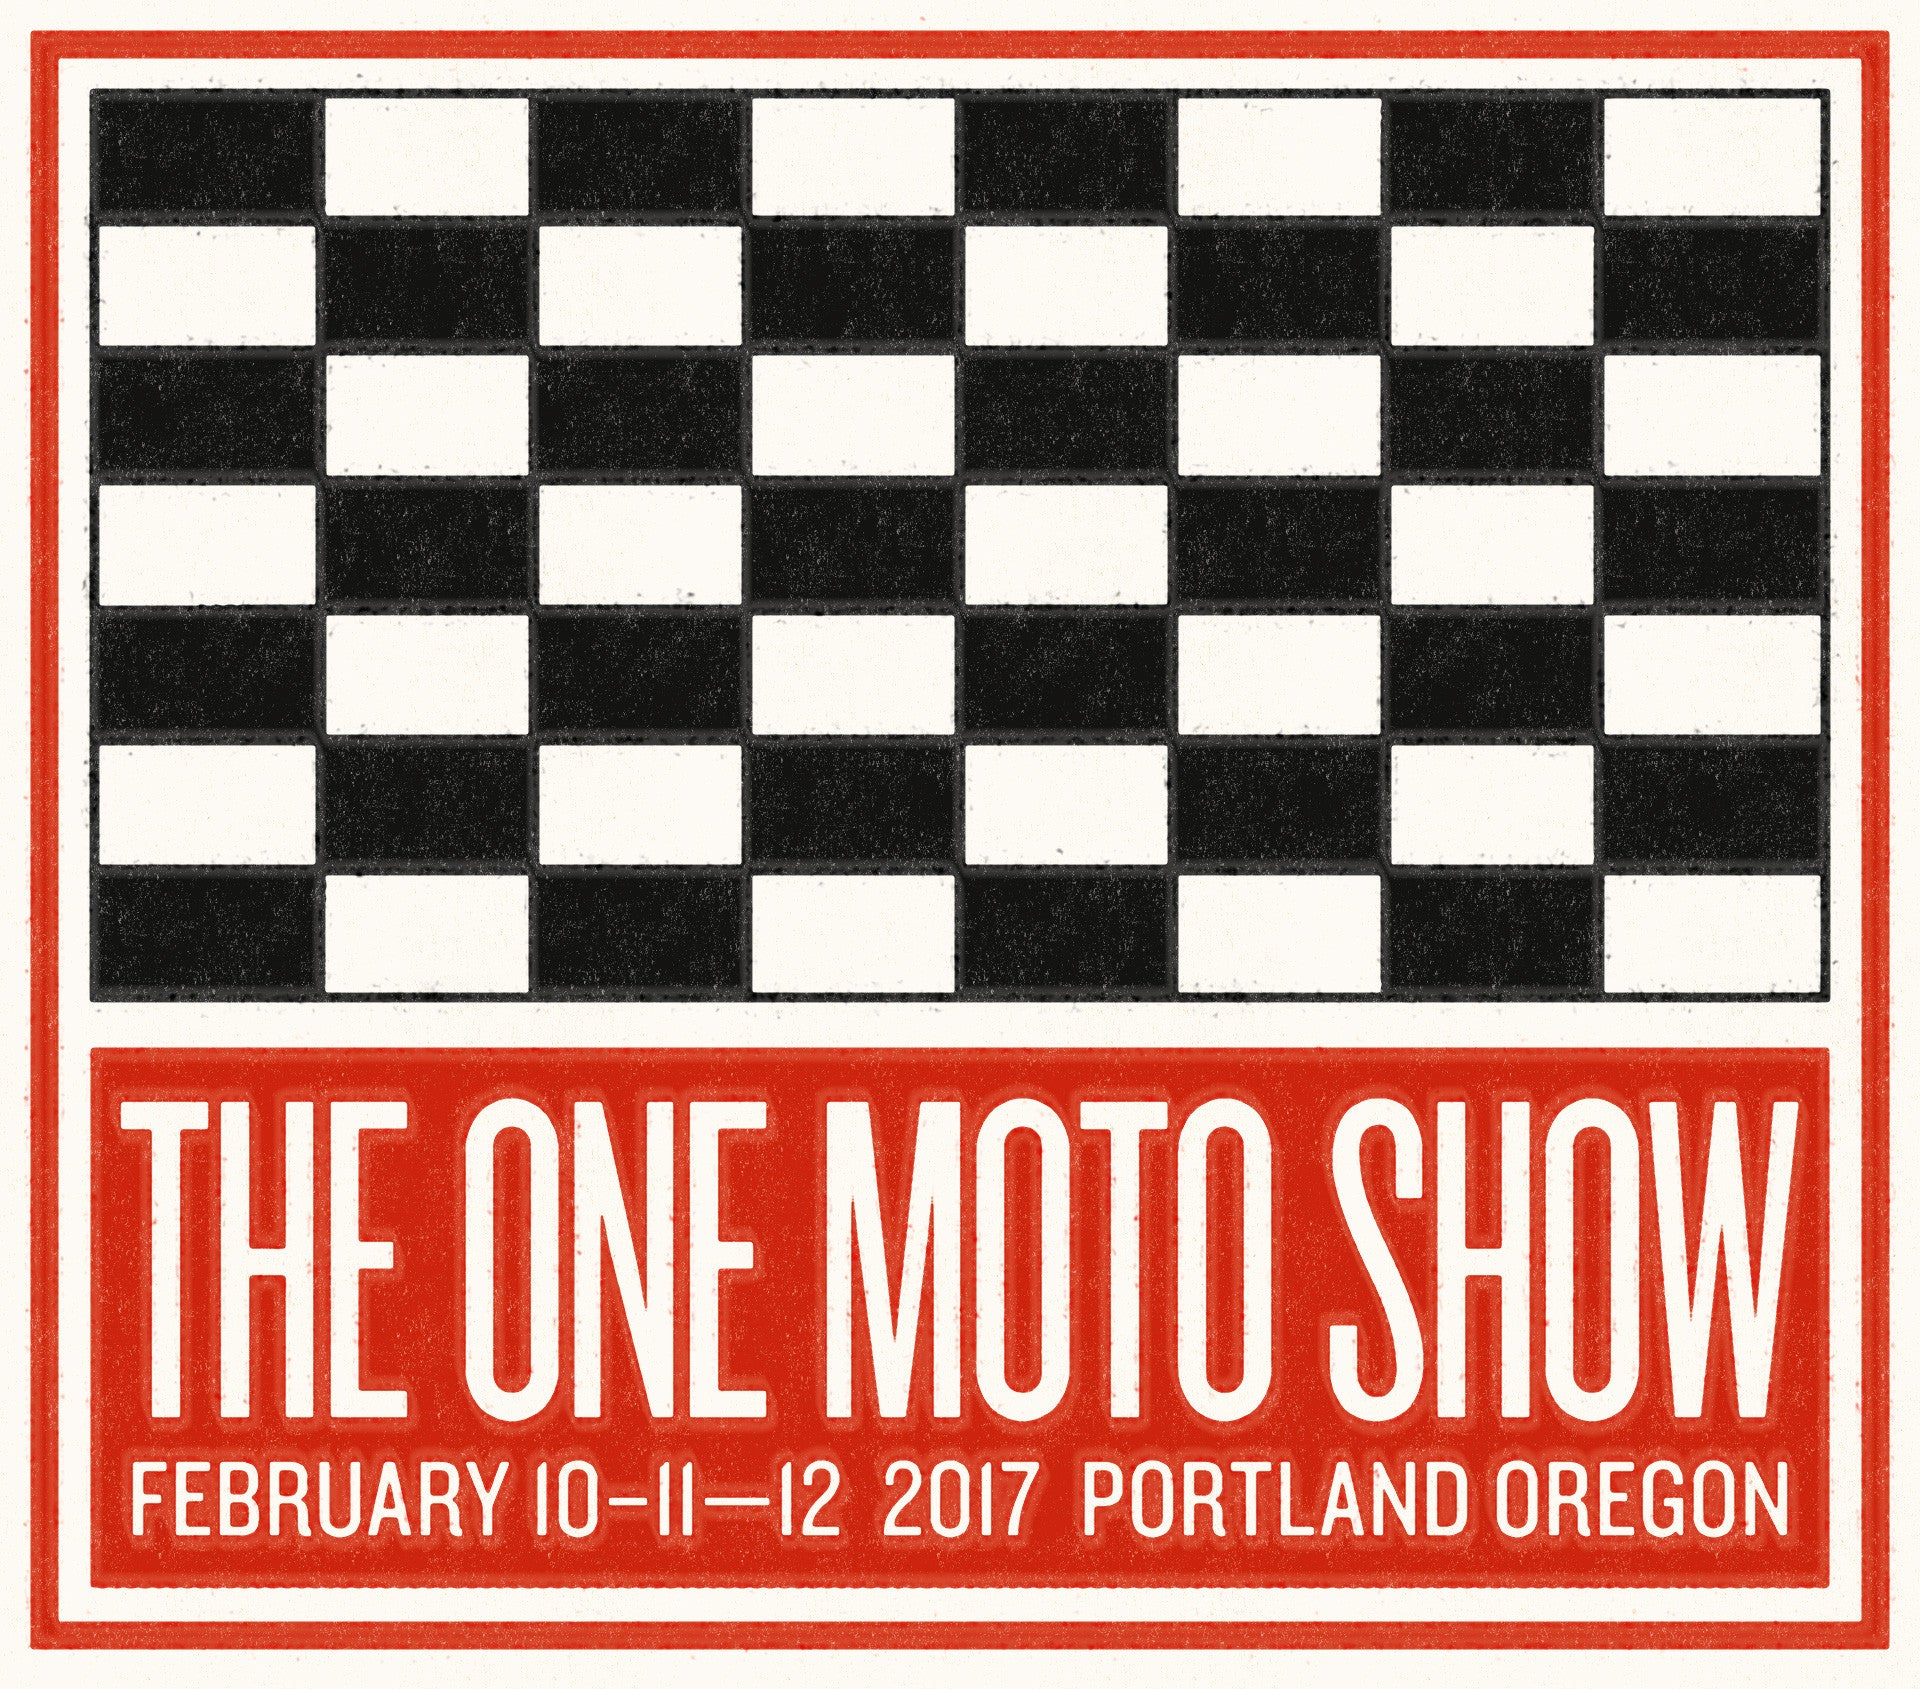 8Th Annual One Motorcycle Show